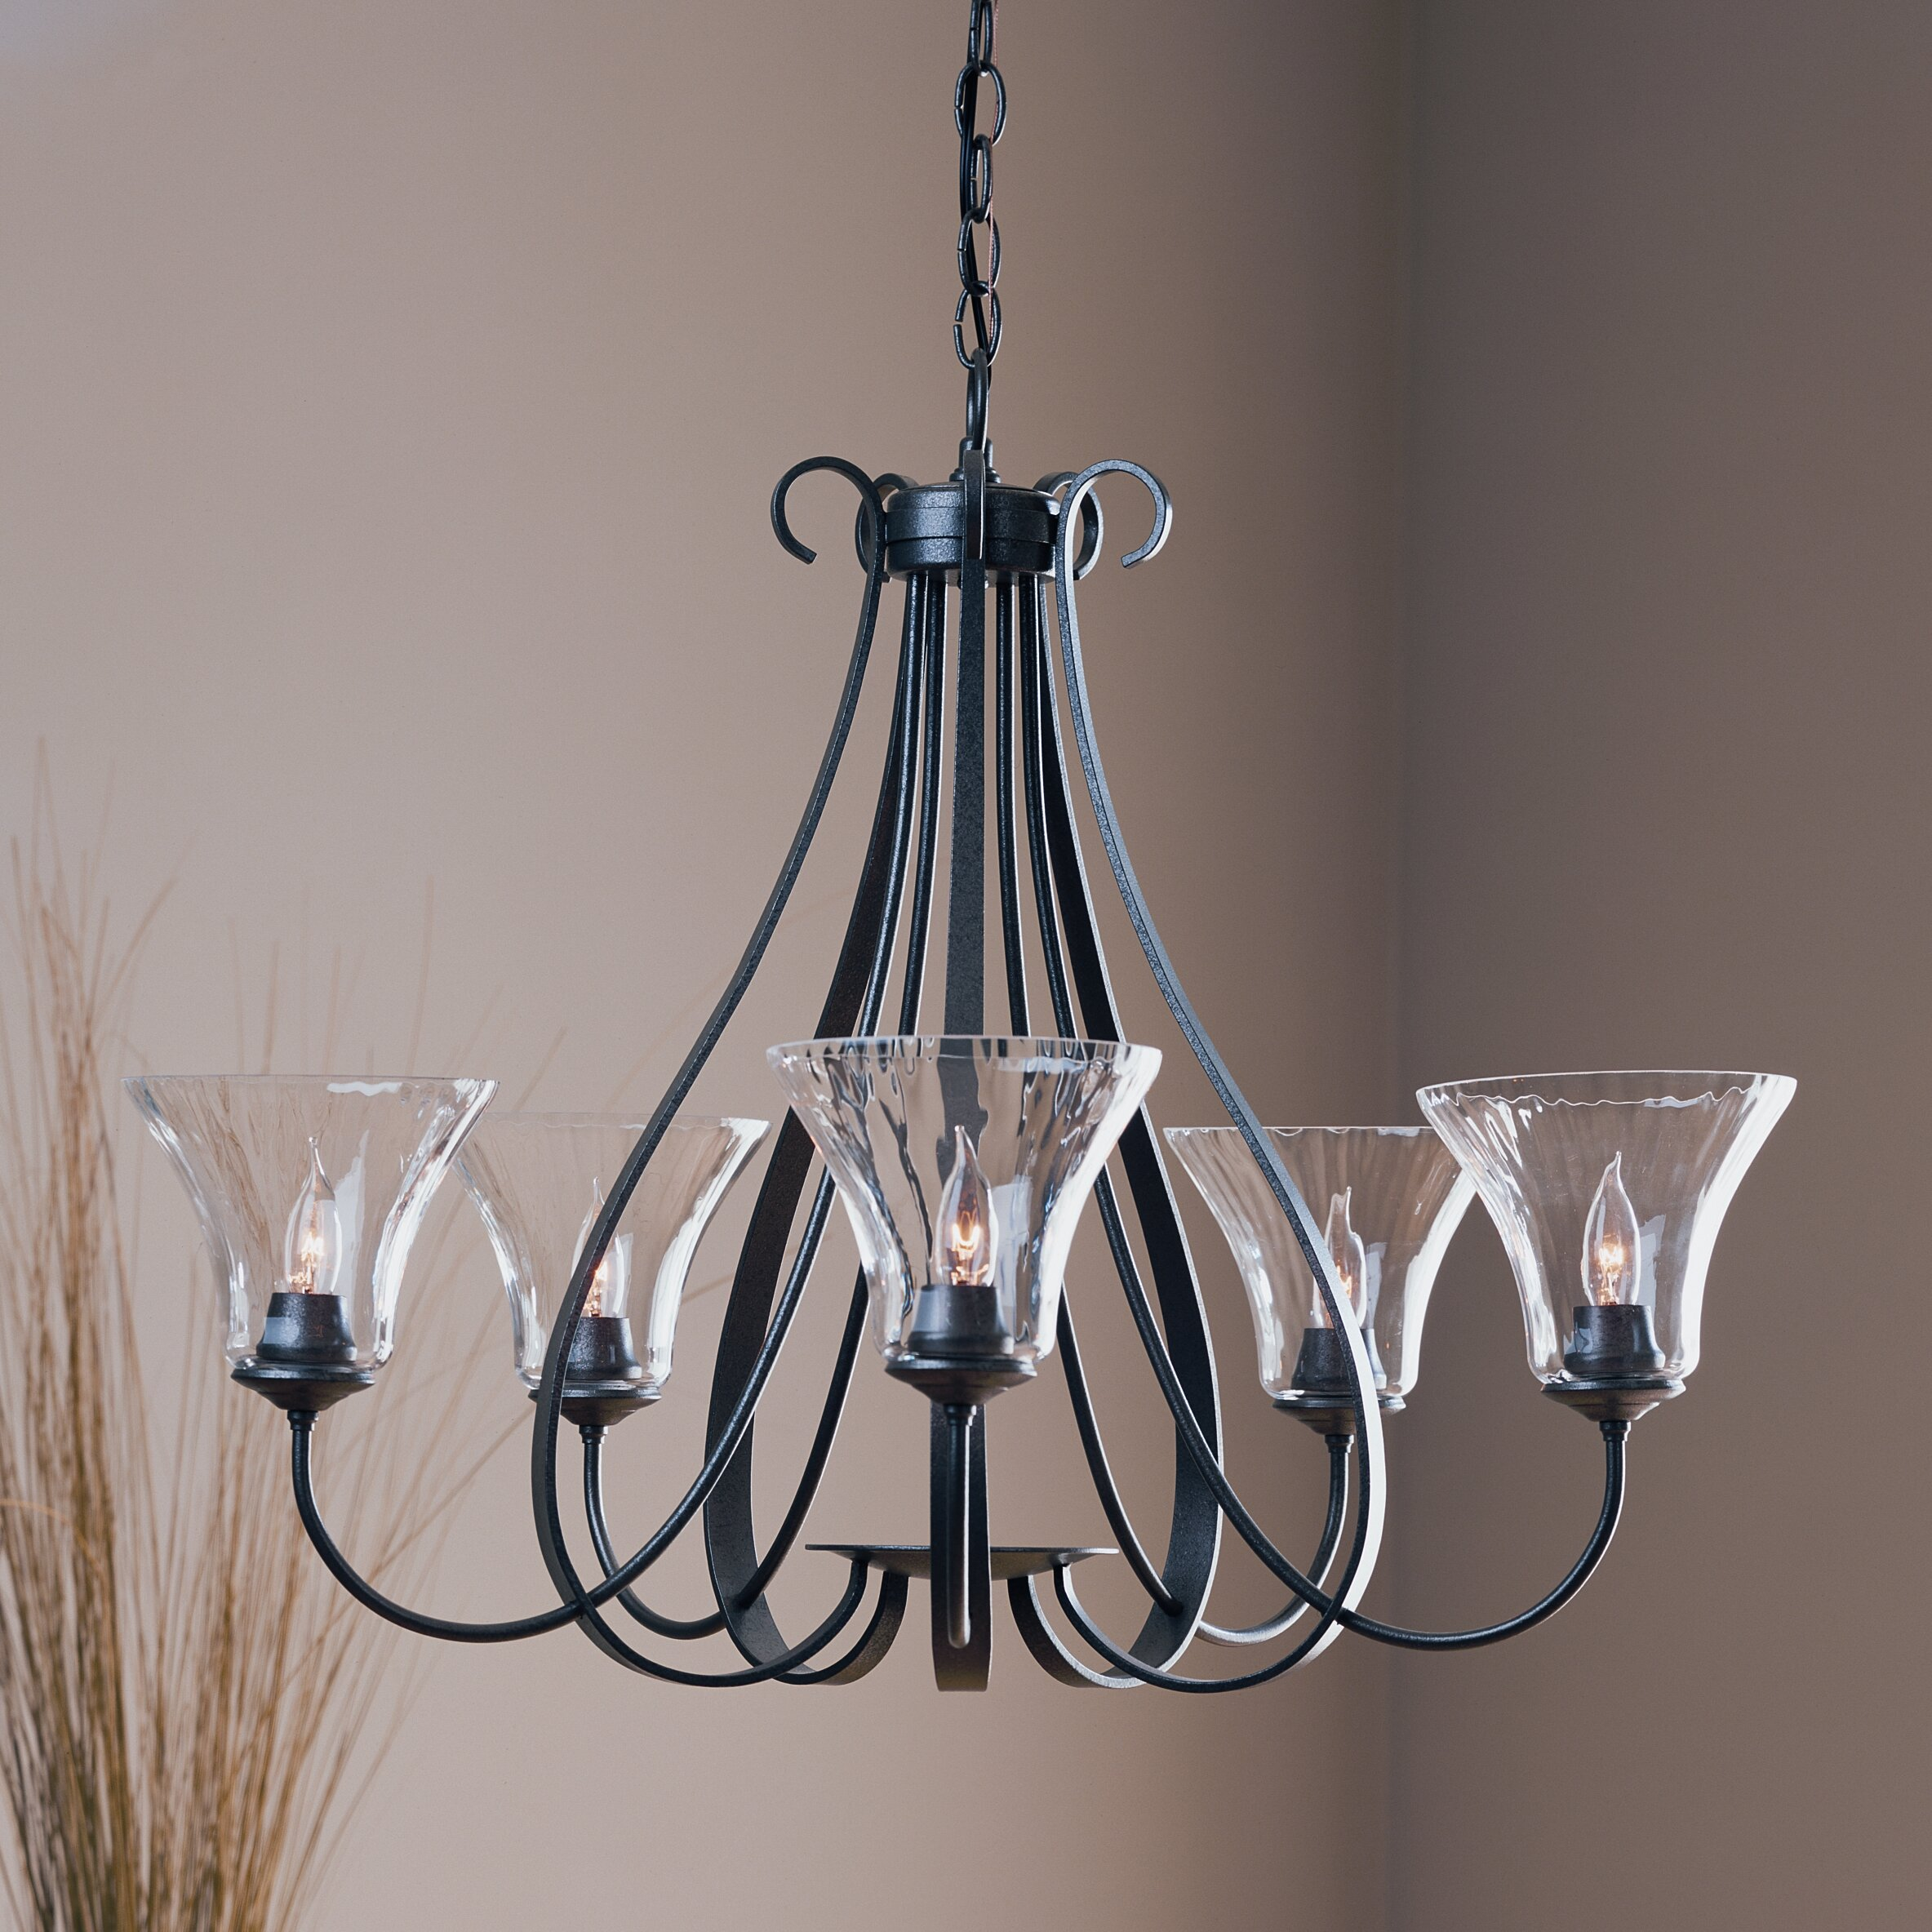 5 light chandelier with water glass shade wayfair for Dining room 5 light chandelier